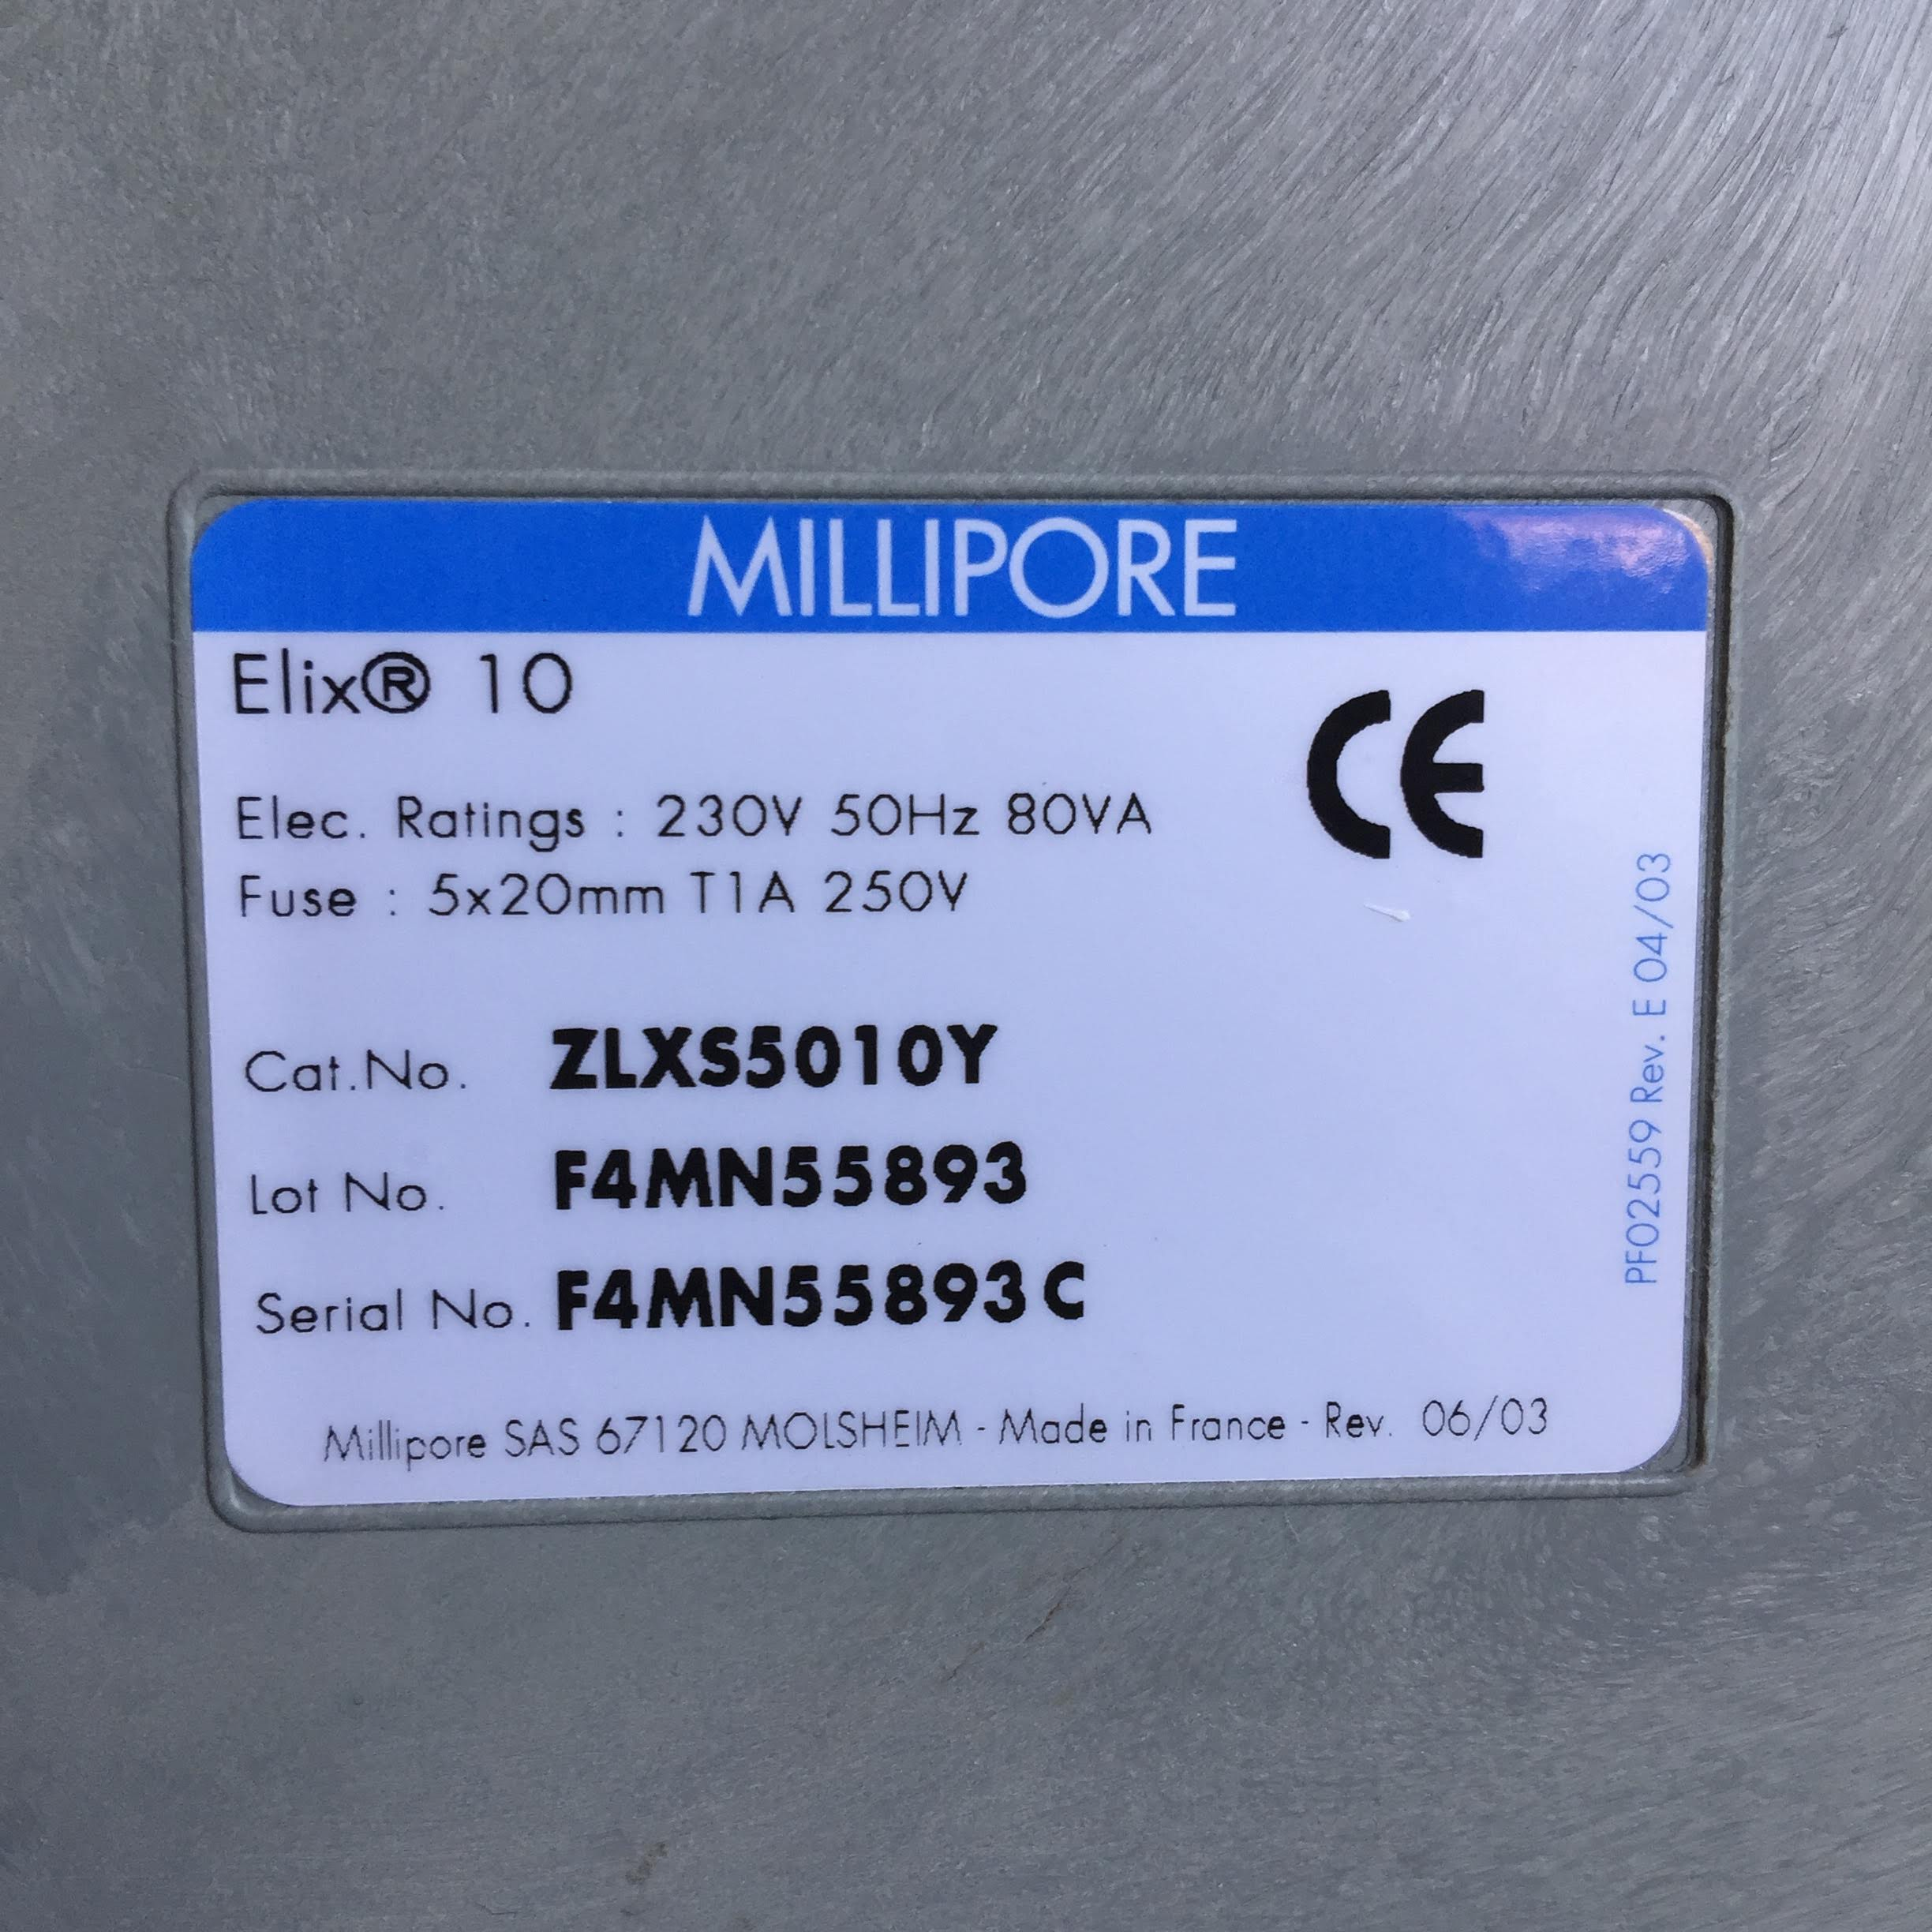 Millipore Elix 10 Product Information